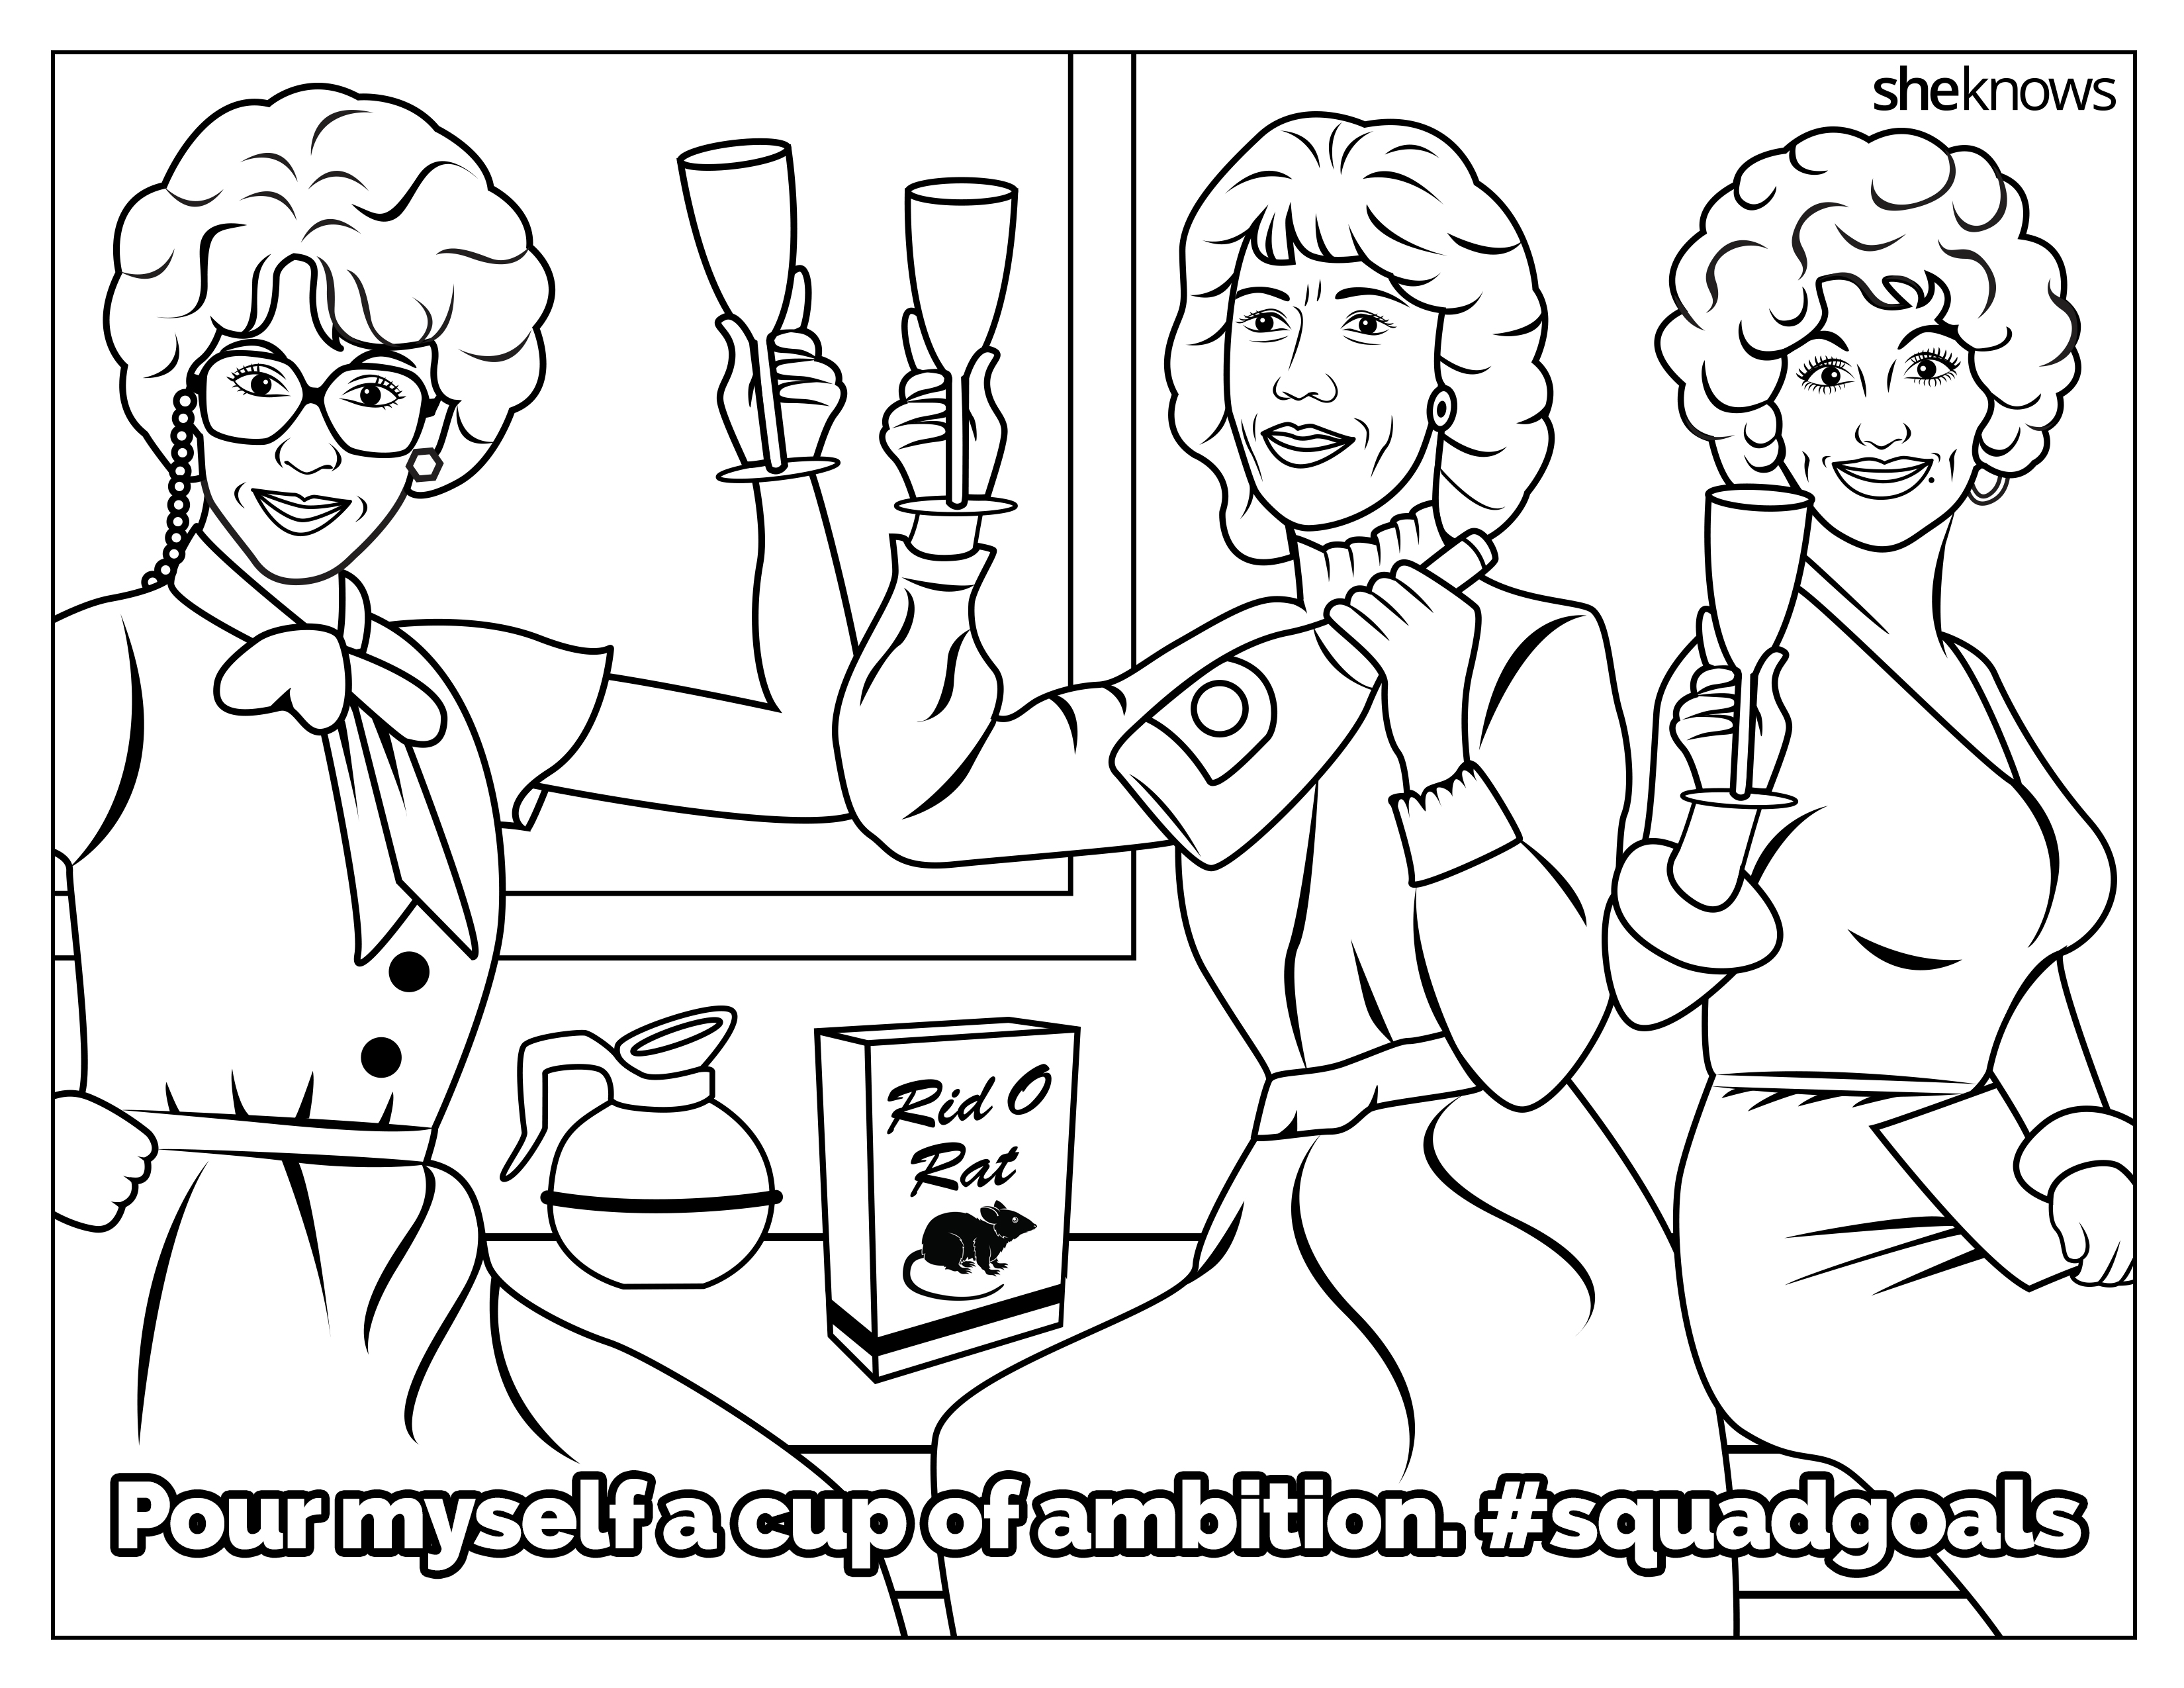 The Ultimate #SquadGoals Coloring Book — Print It, Color It ...